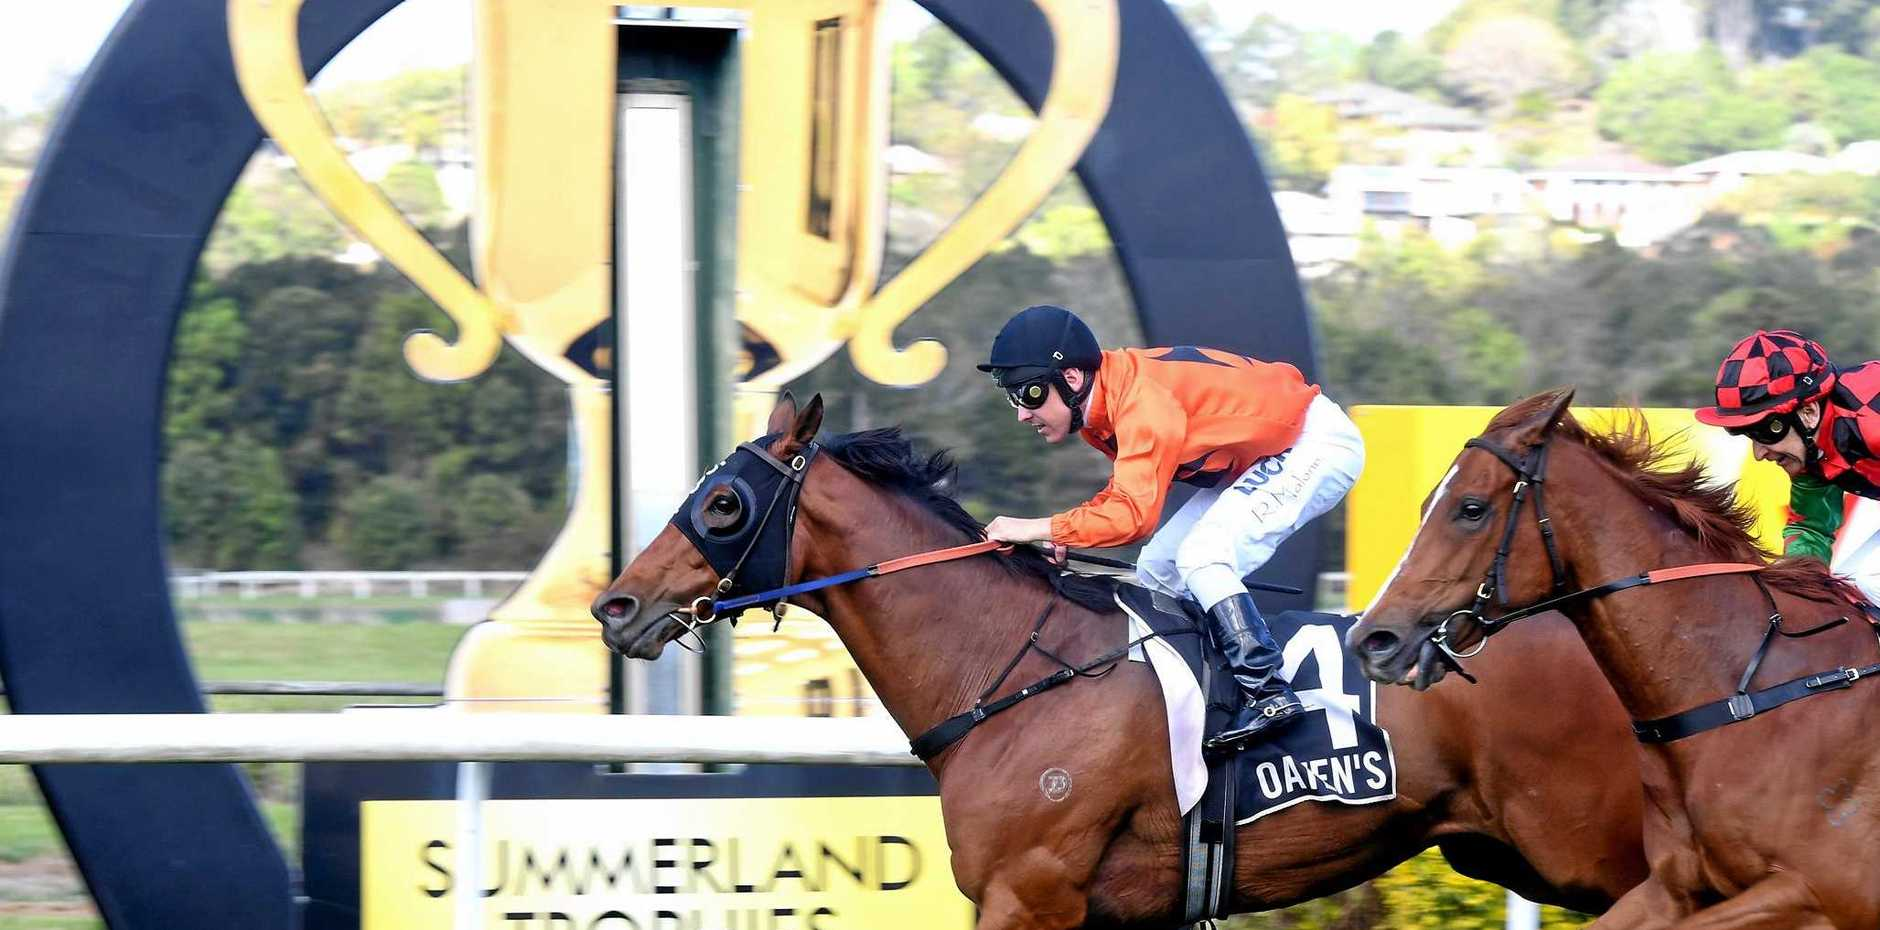 Local Lismore equestrian advocates back retiring racehorses.  Pictures is Ryan Maloney riding Spiral to victory in Race 3 at last year's Lismore Cup.